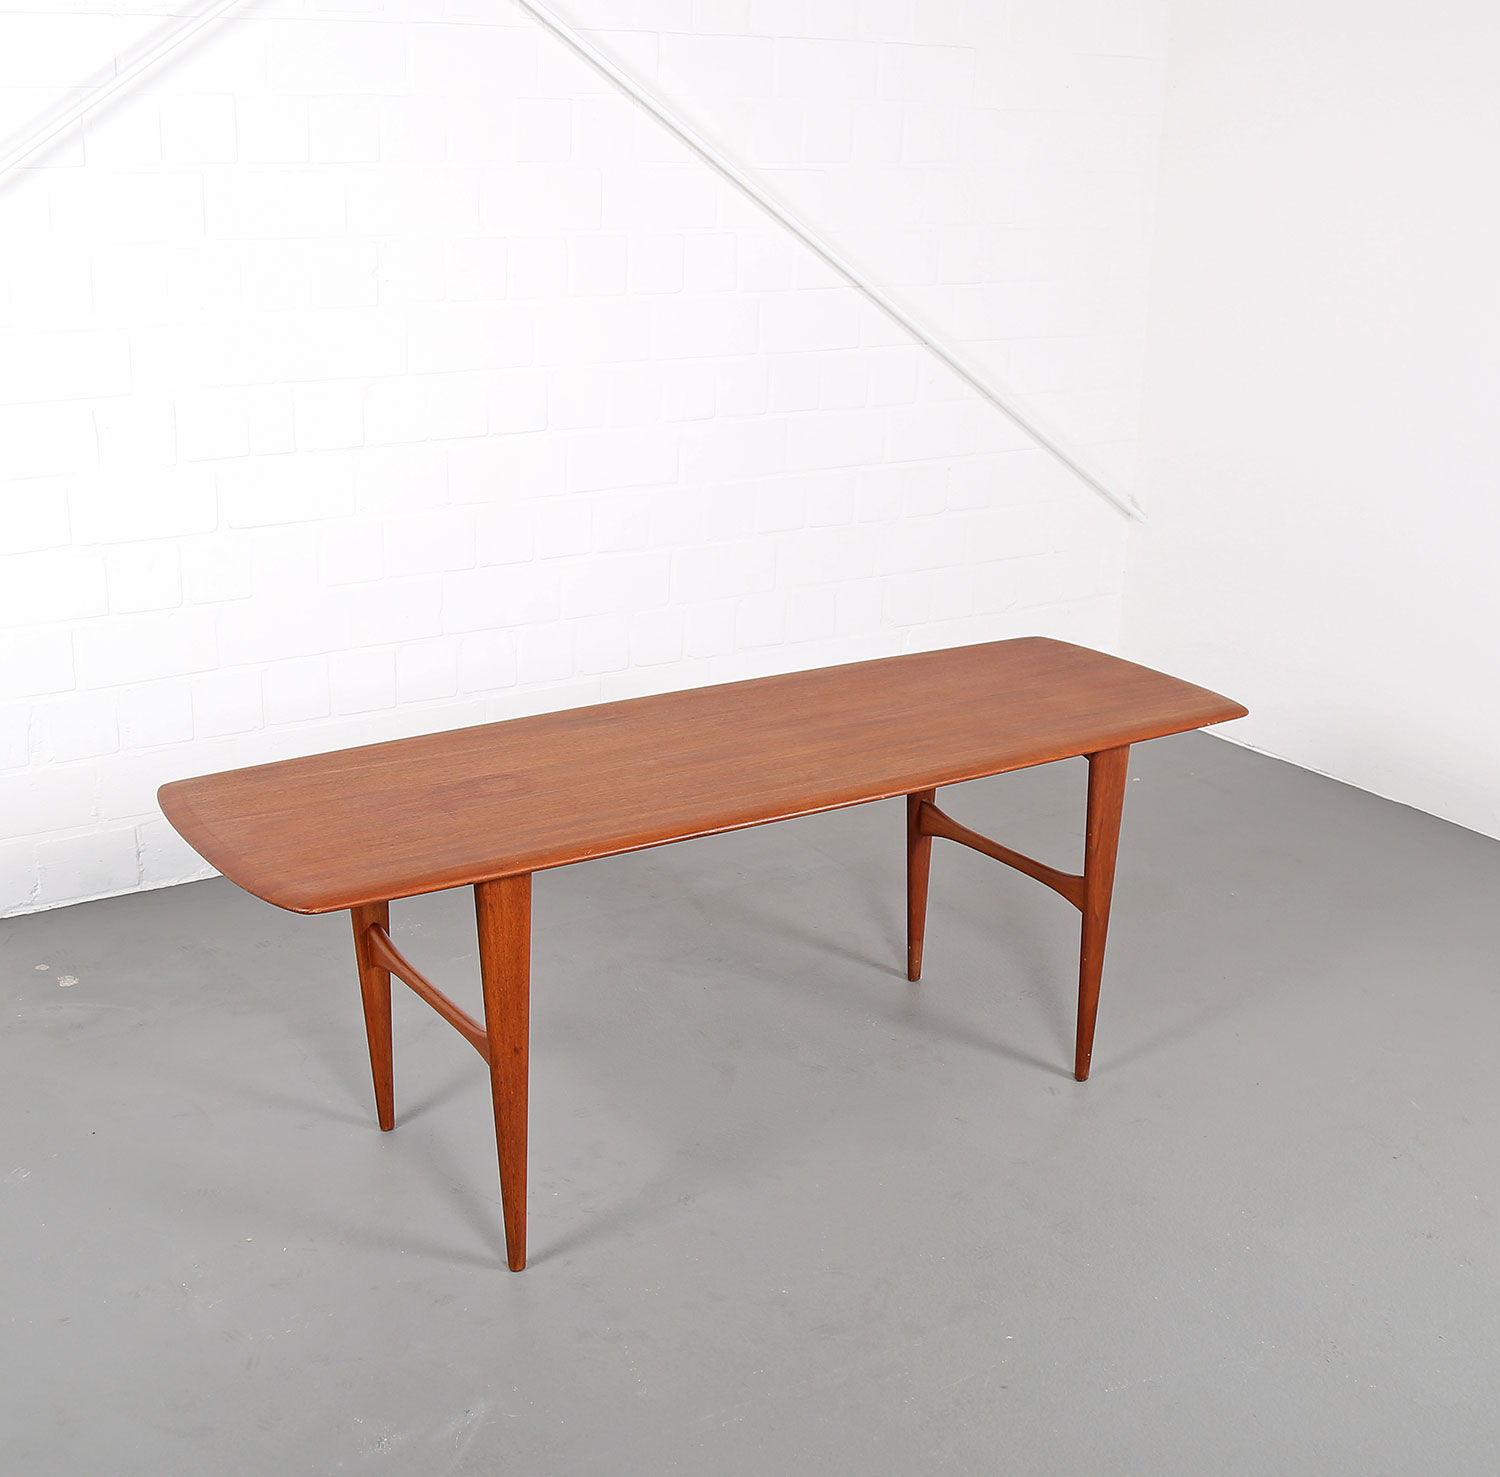 Danish design teak coffee table tisch 60er peter hvidt for 60s table design